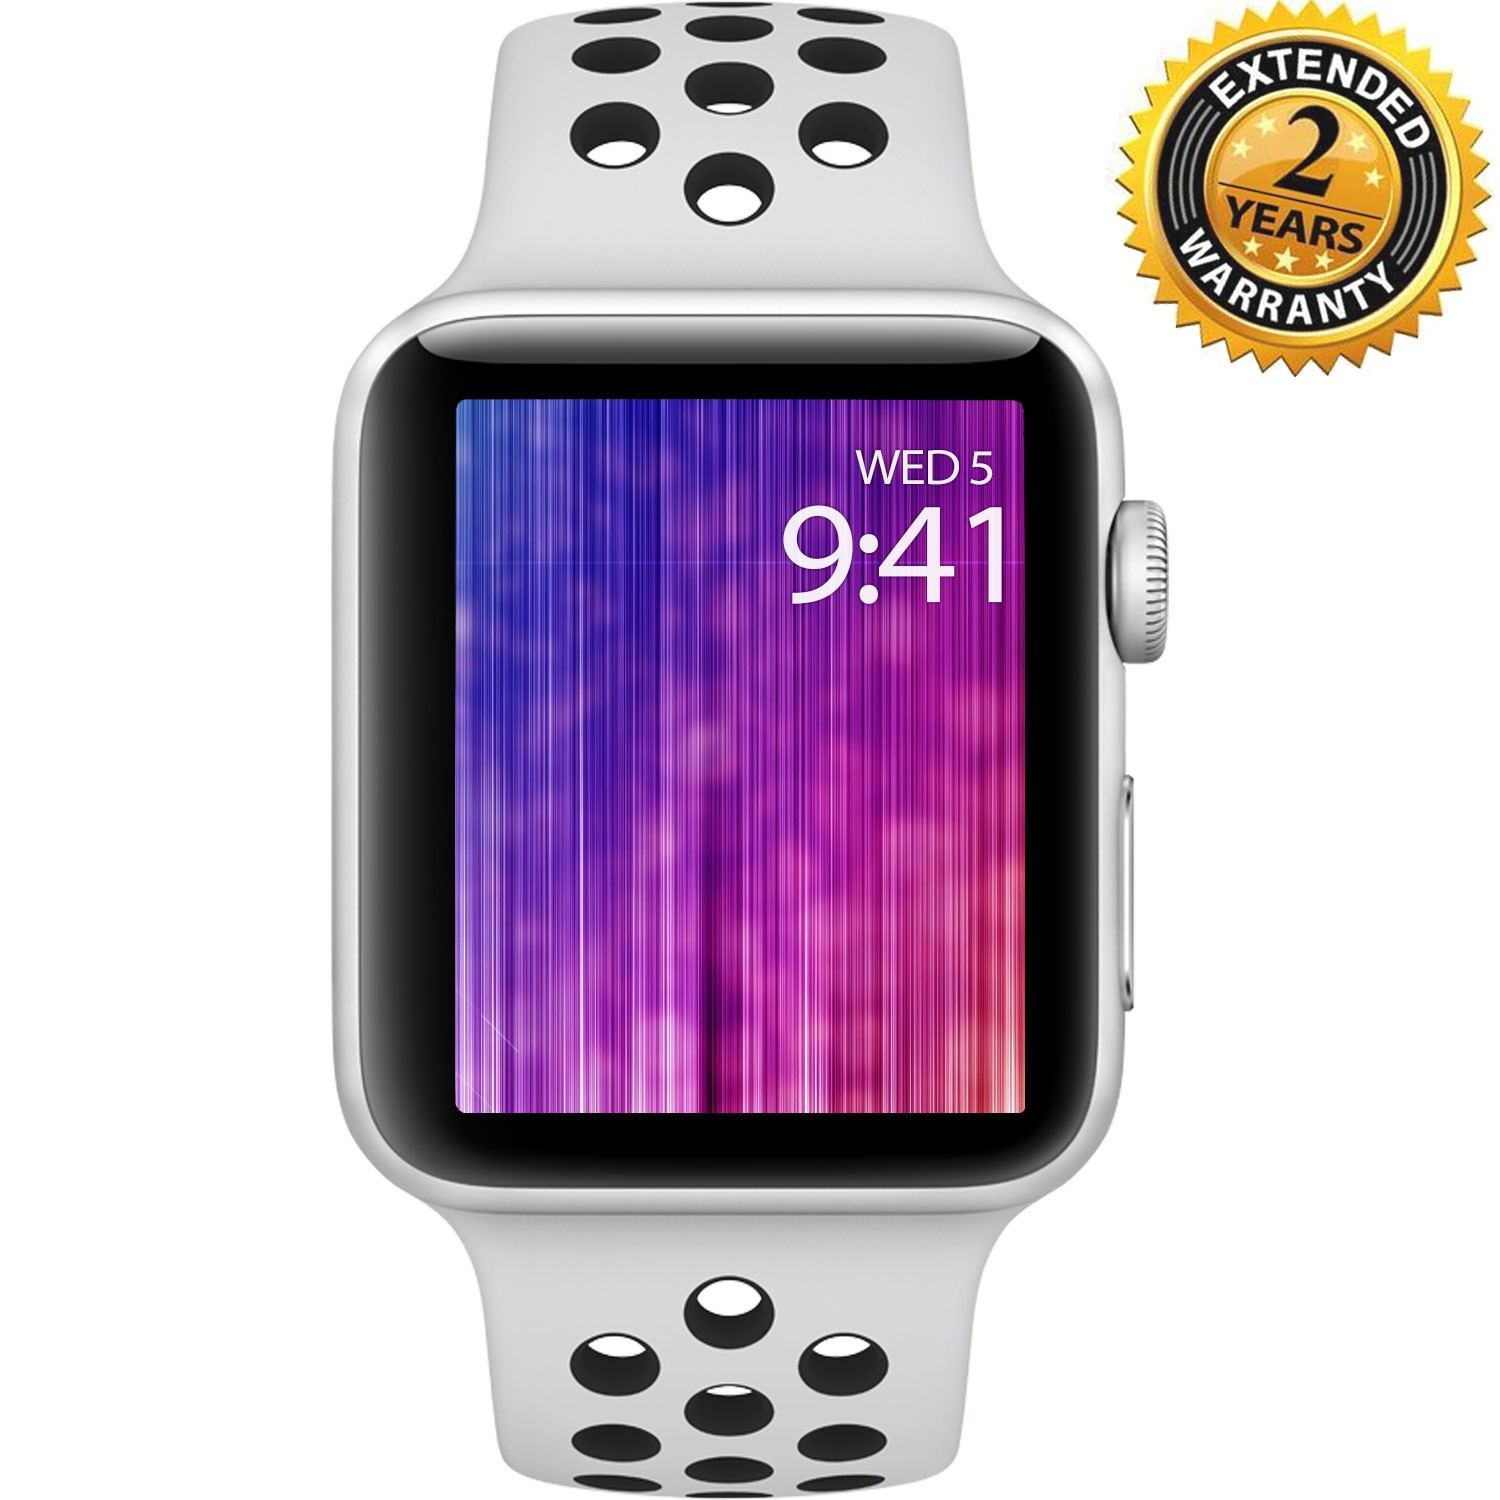 Apple Watch Nike+ Series 3 38mm Smartwatch (GPS Only, Silver Aluminum Case, Pure Platinum/Black Nike Sport Band Band) with 2 Year Extended Warranty